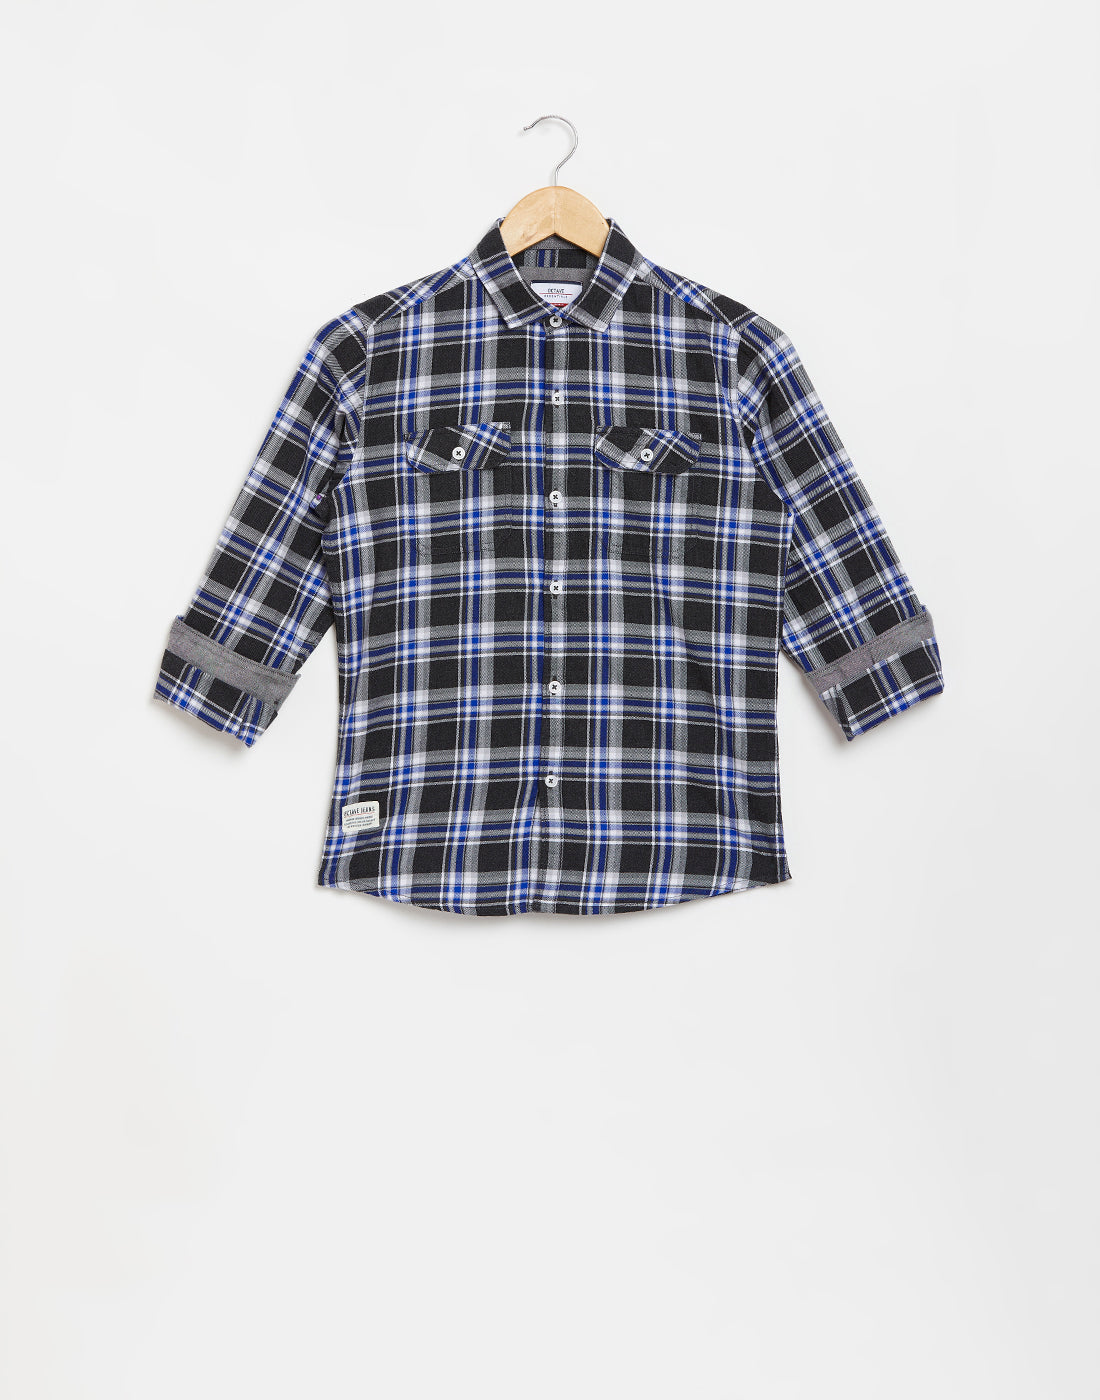 Octave Boys Royal Blue Checked Casual Shirt